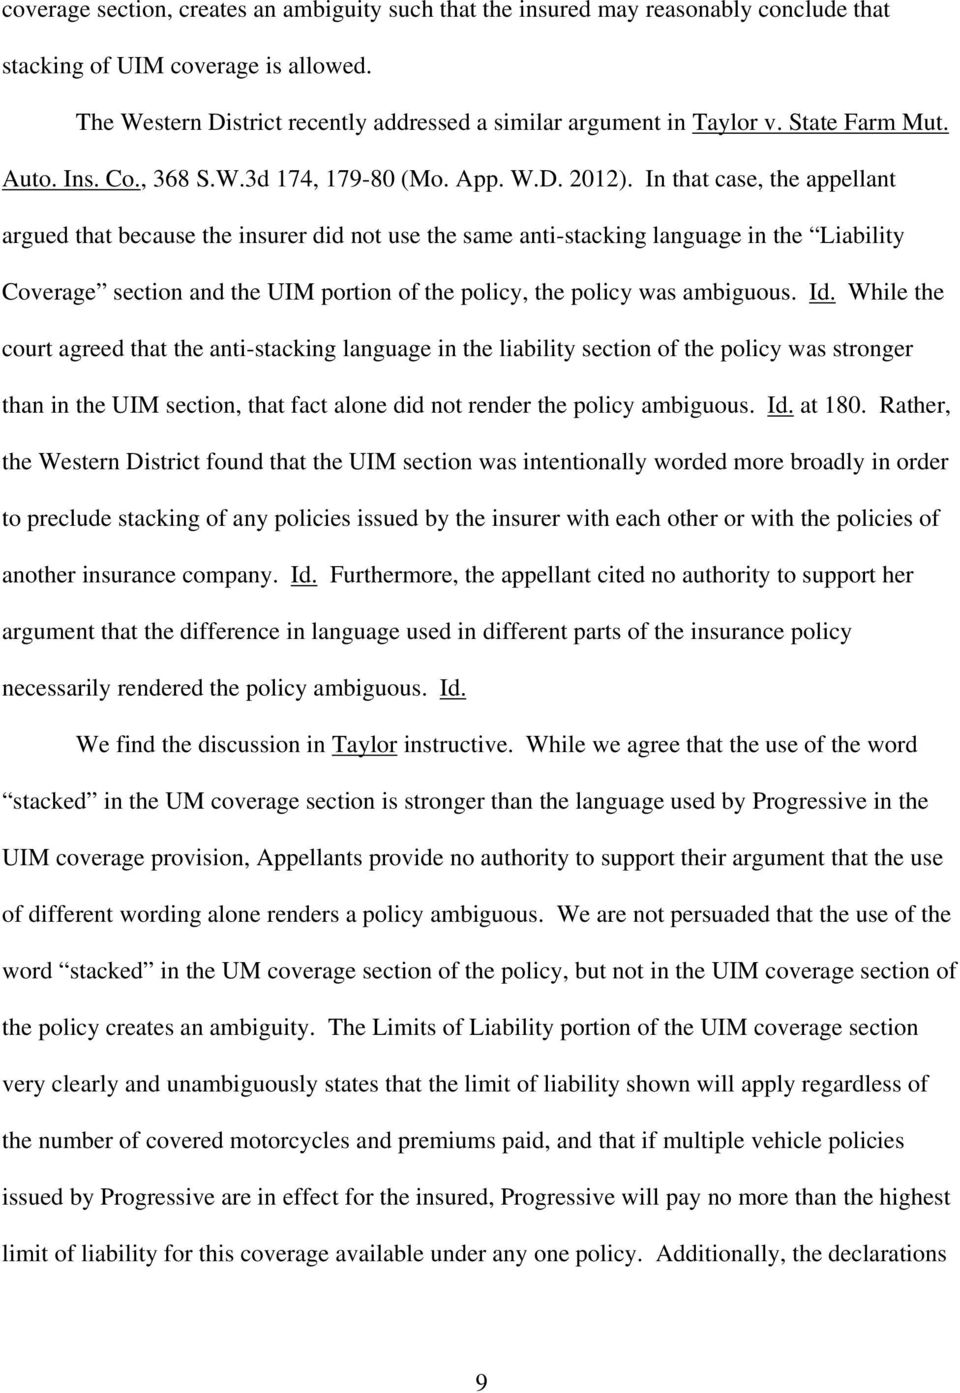 In that case, the appellant argued that because the insurer did not use the same anti-stacking language in the Liability Coverage section and the UIM portion of the policy, the policy was ambiguous.